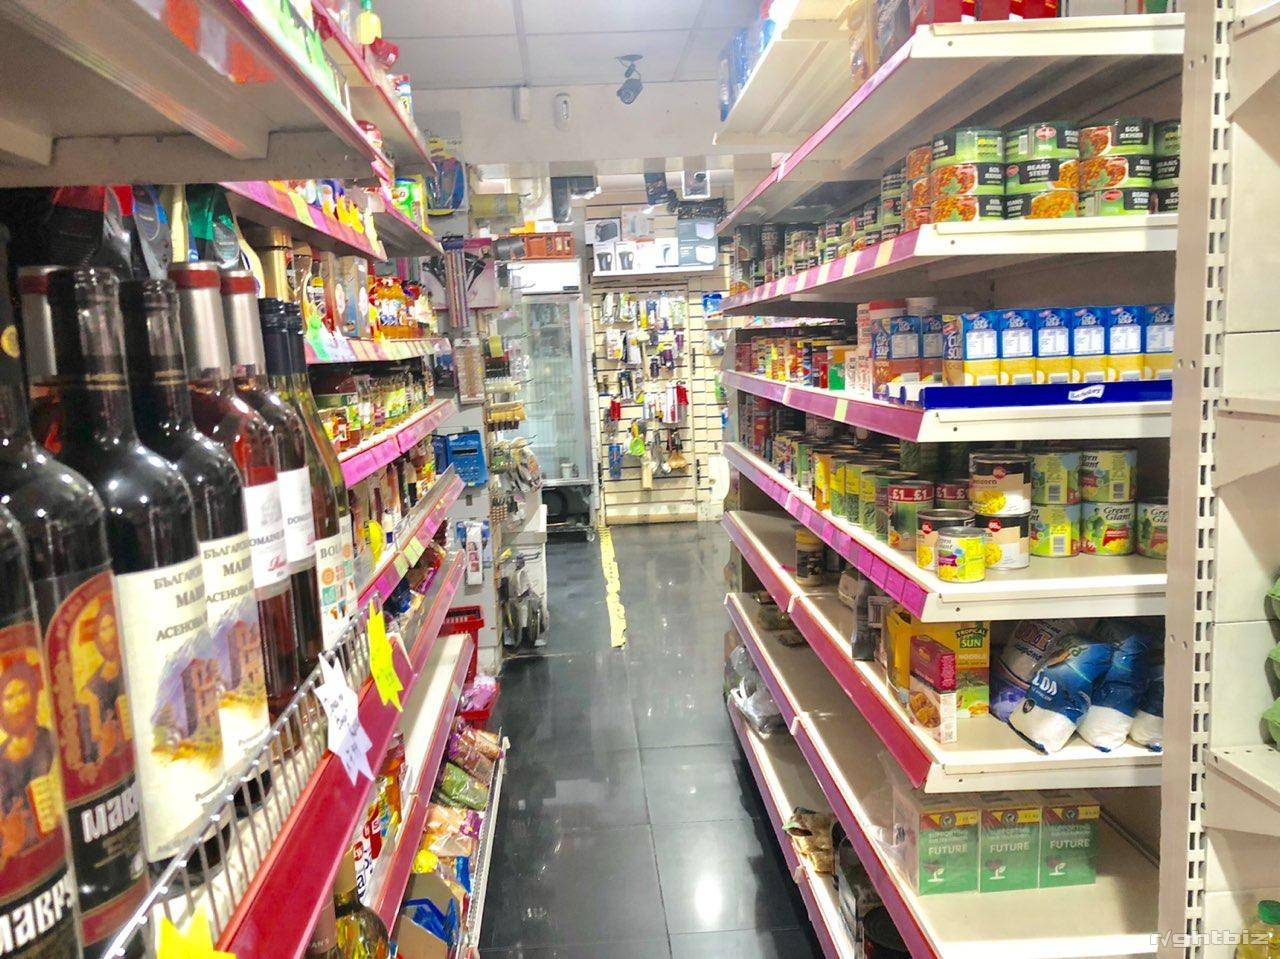 Off License & Grocery for Sale in Goodmayes Ilford IG3 9UN - Image 6